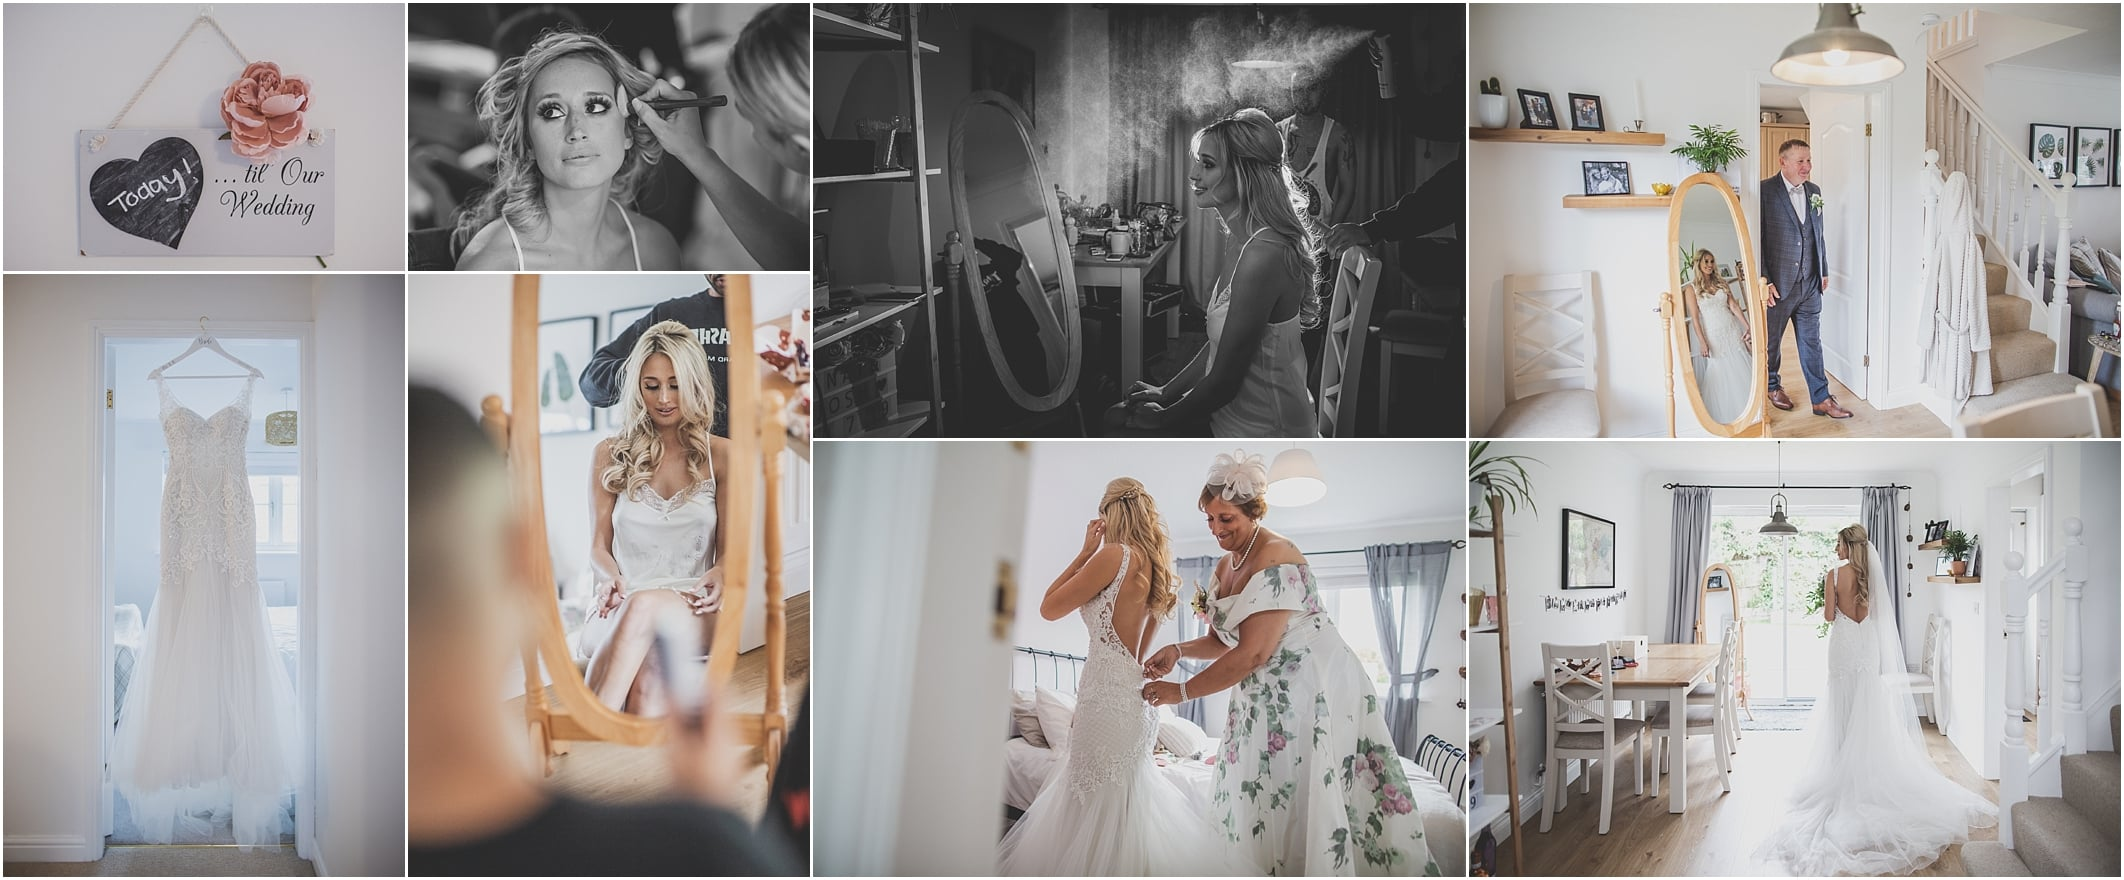 Wedding-Photographer-Bridal-Preperations